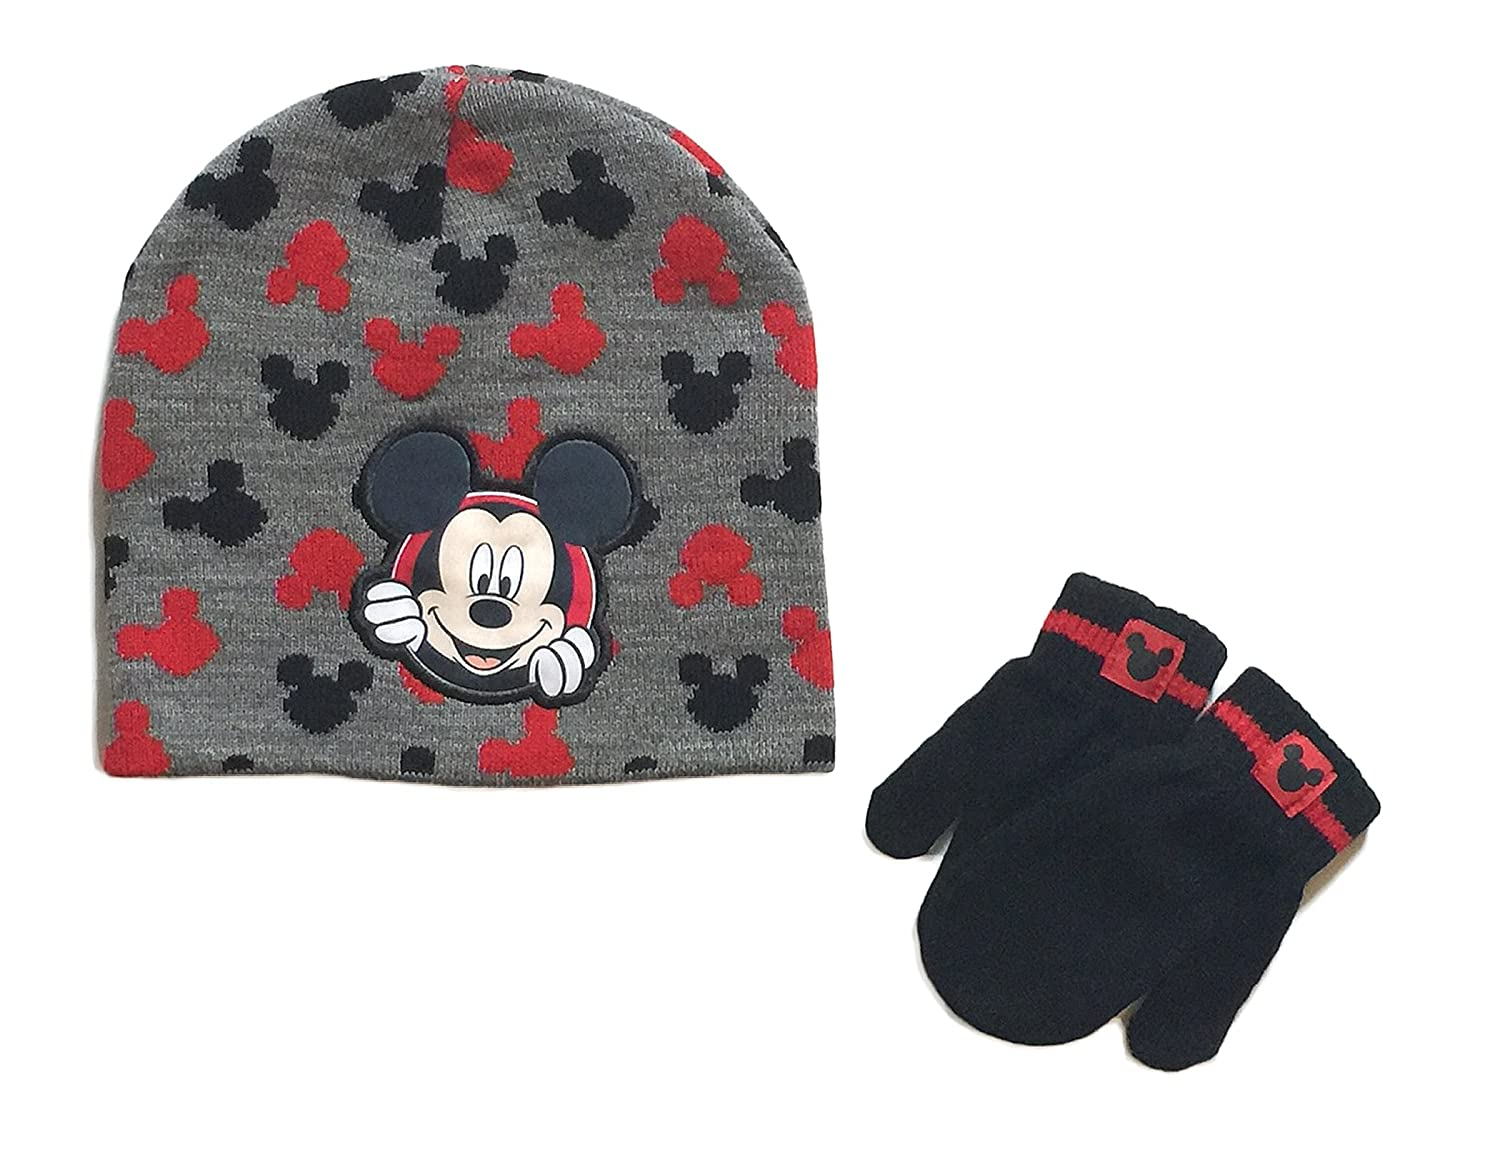 Mickey Mouse Baby Boys Toddler Winter Hat & Mitten Set 00-JZX1H9